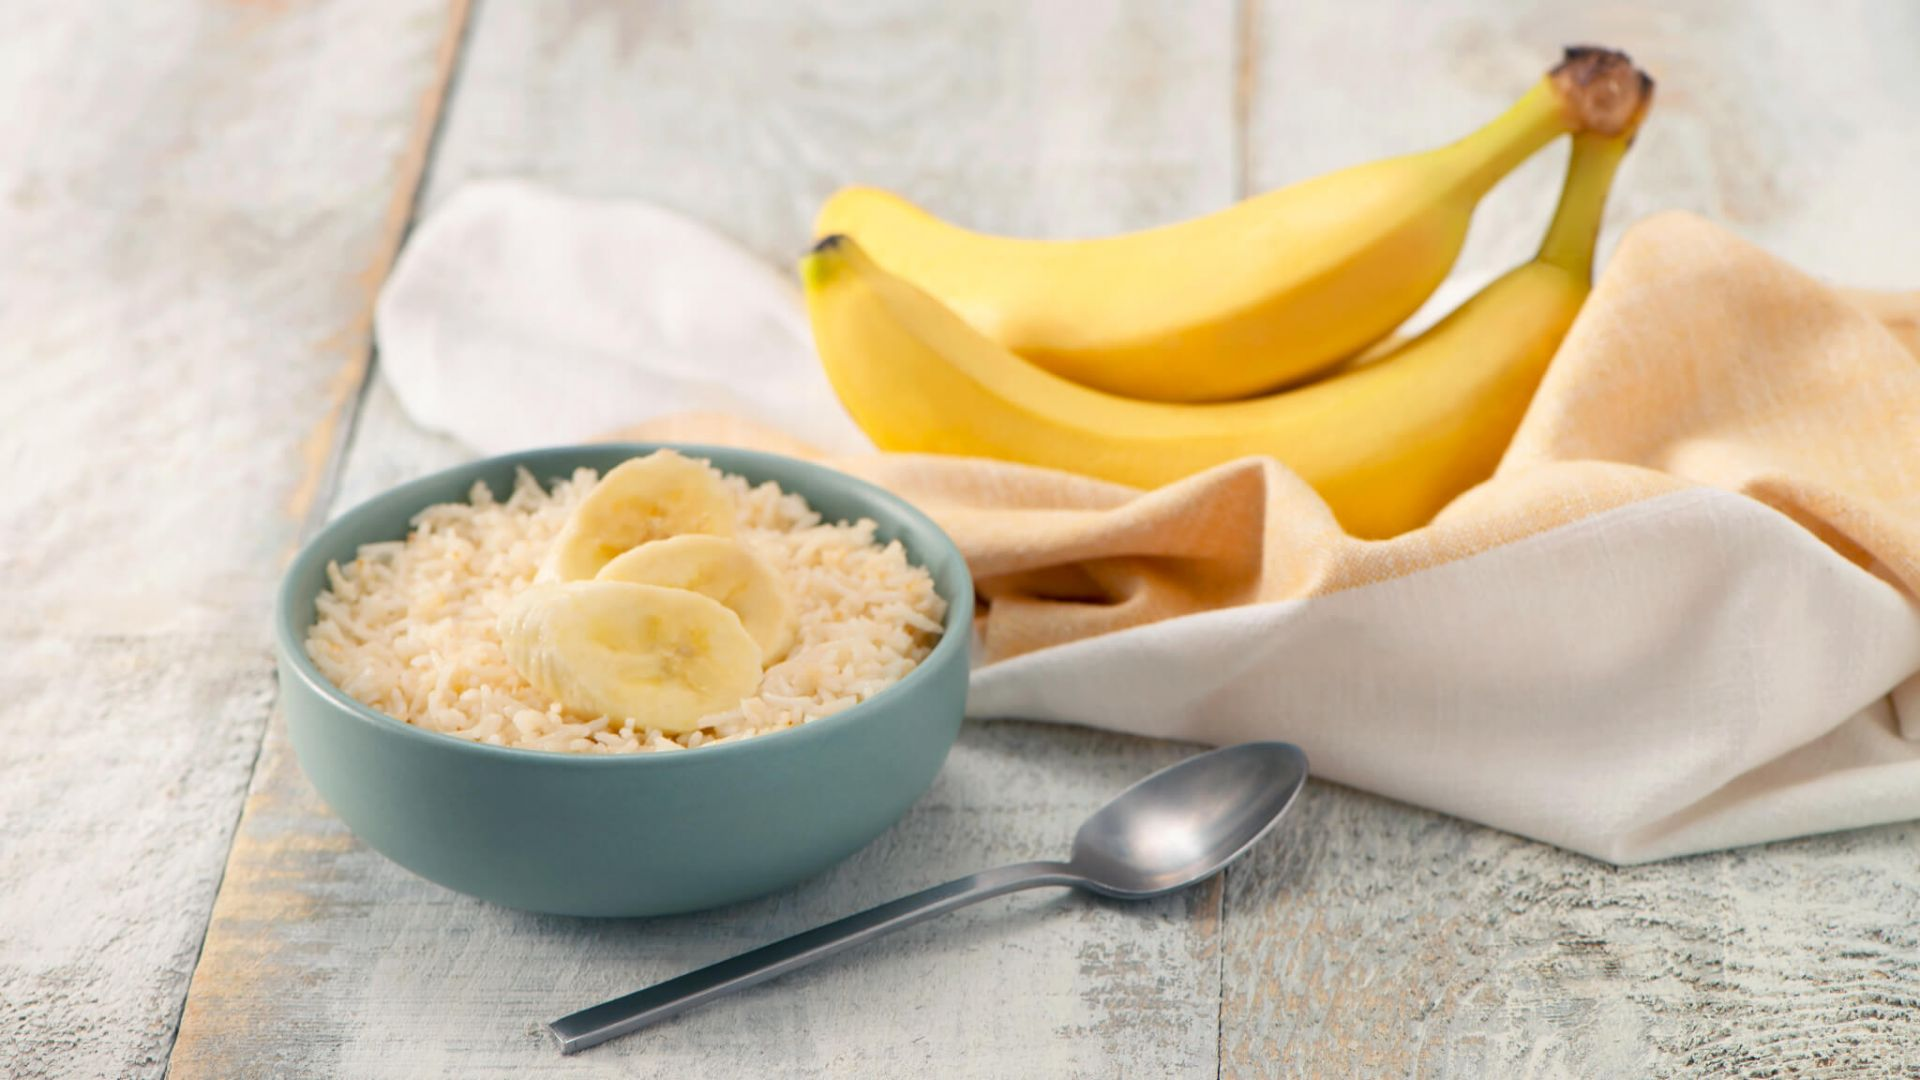 Breakfast Basmati Rice and Bananas